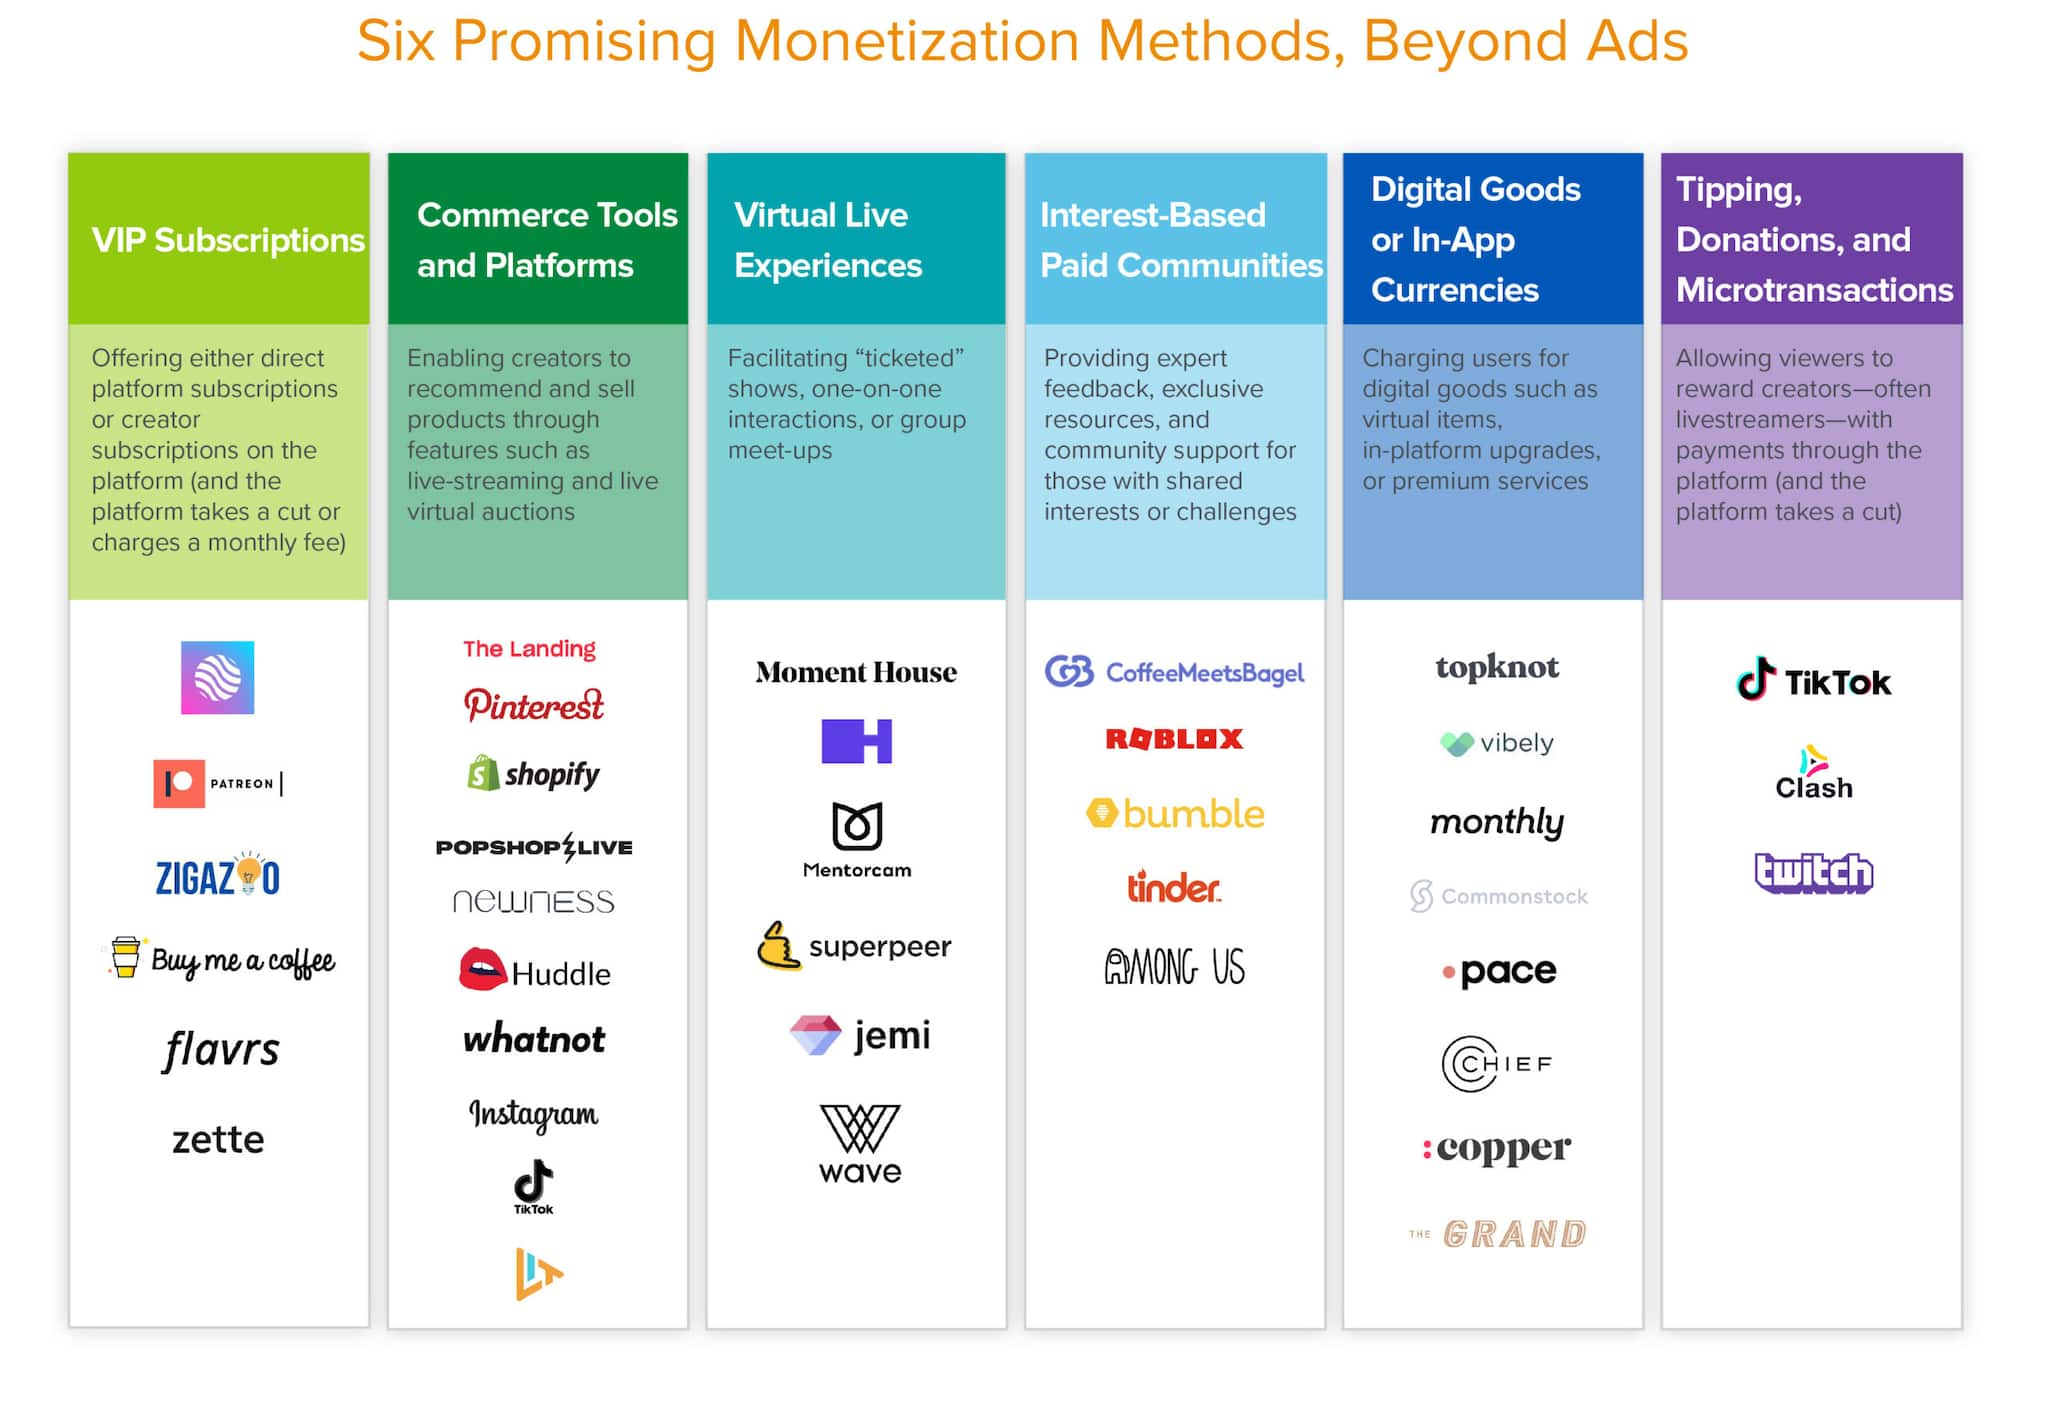 After-Ads-Six-Ways-New-Social-Companies-Will-Monetization-v7_6-Promising-monetization-methods-beyond-ads-scaled